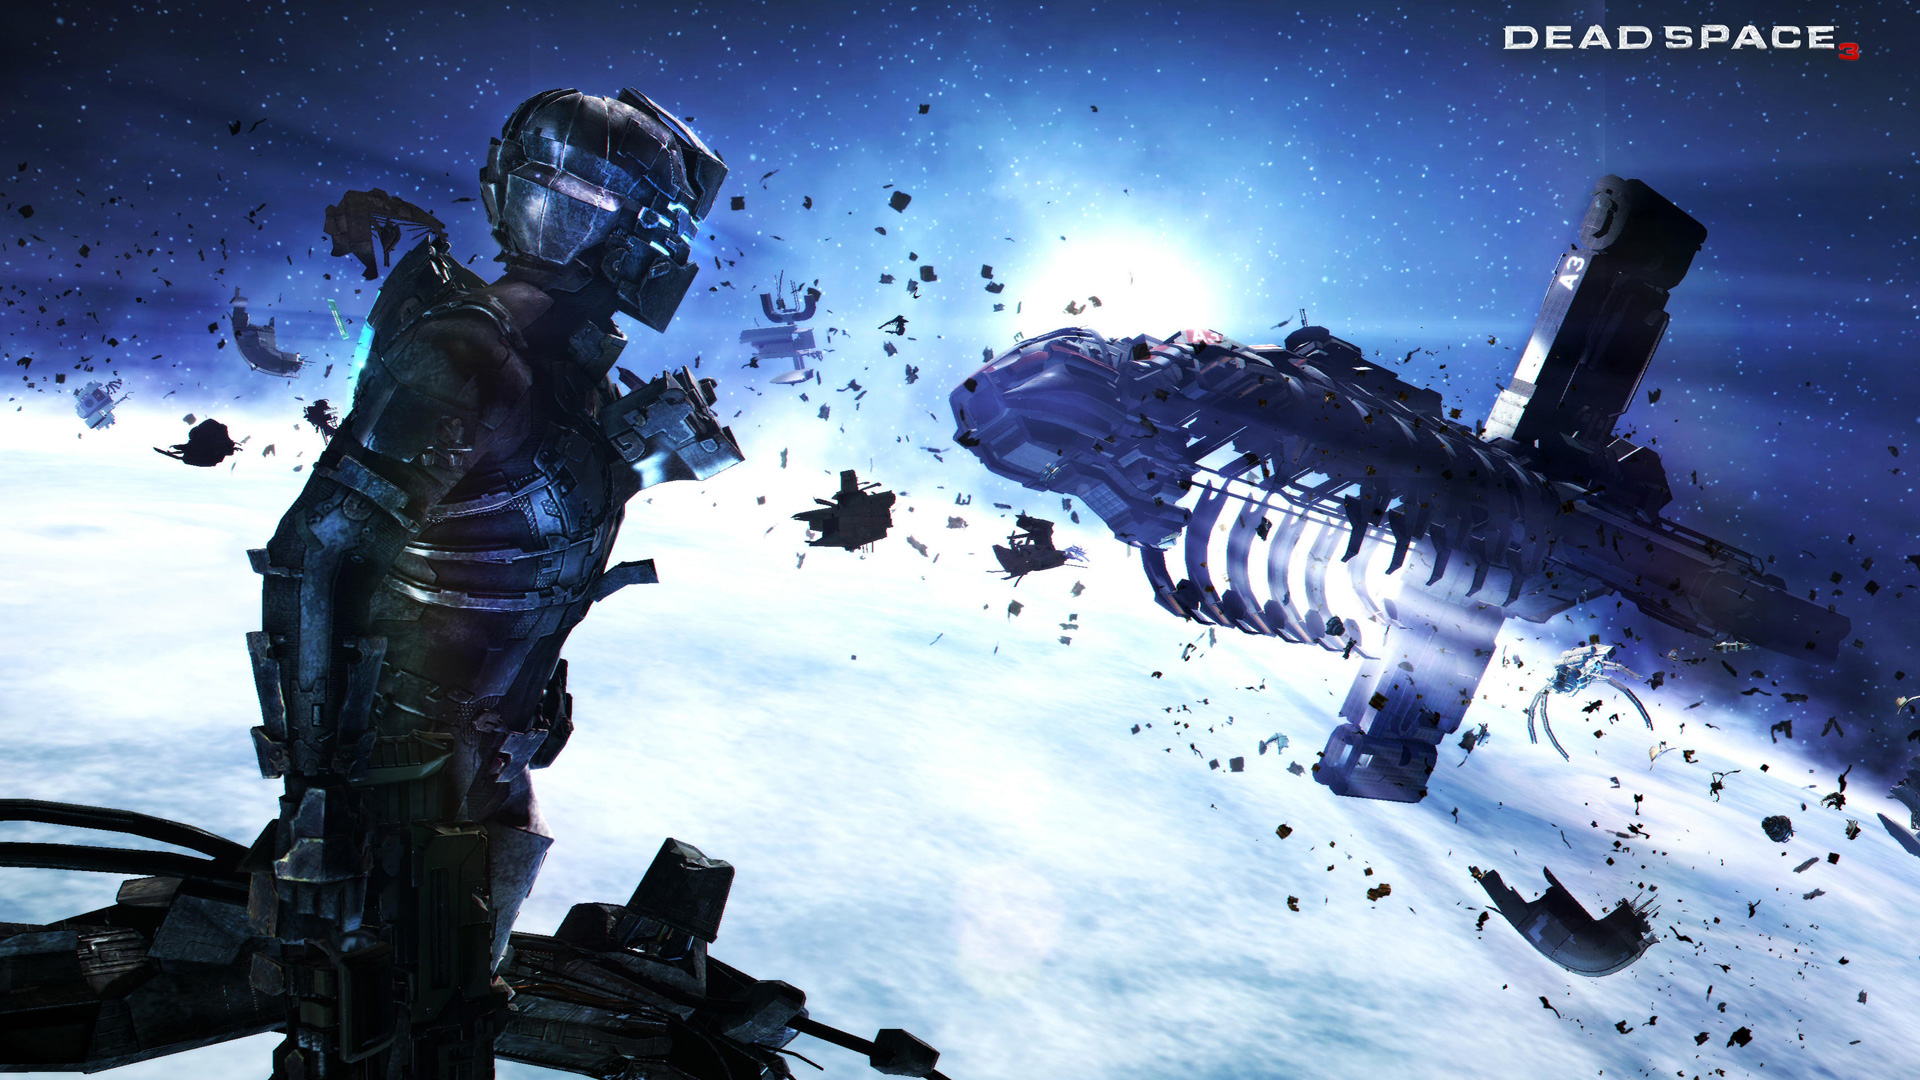 Dead Space 3 1080p Wallpaper